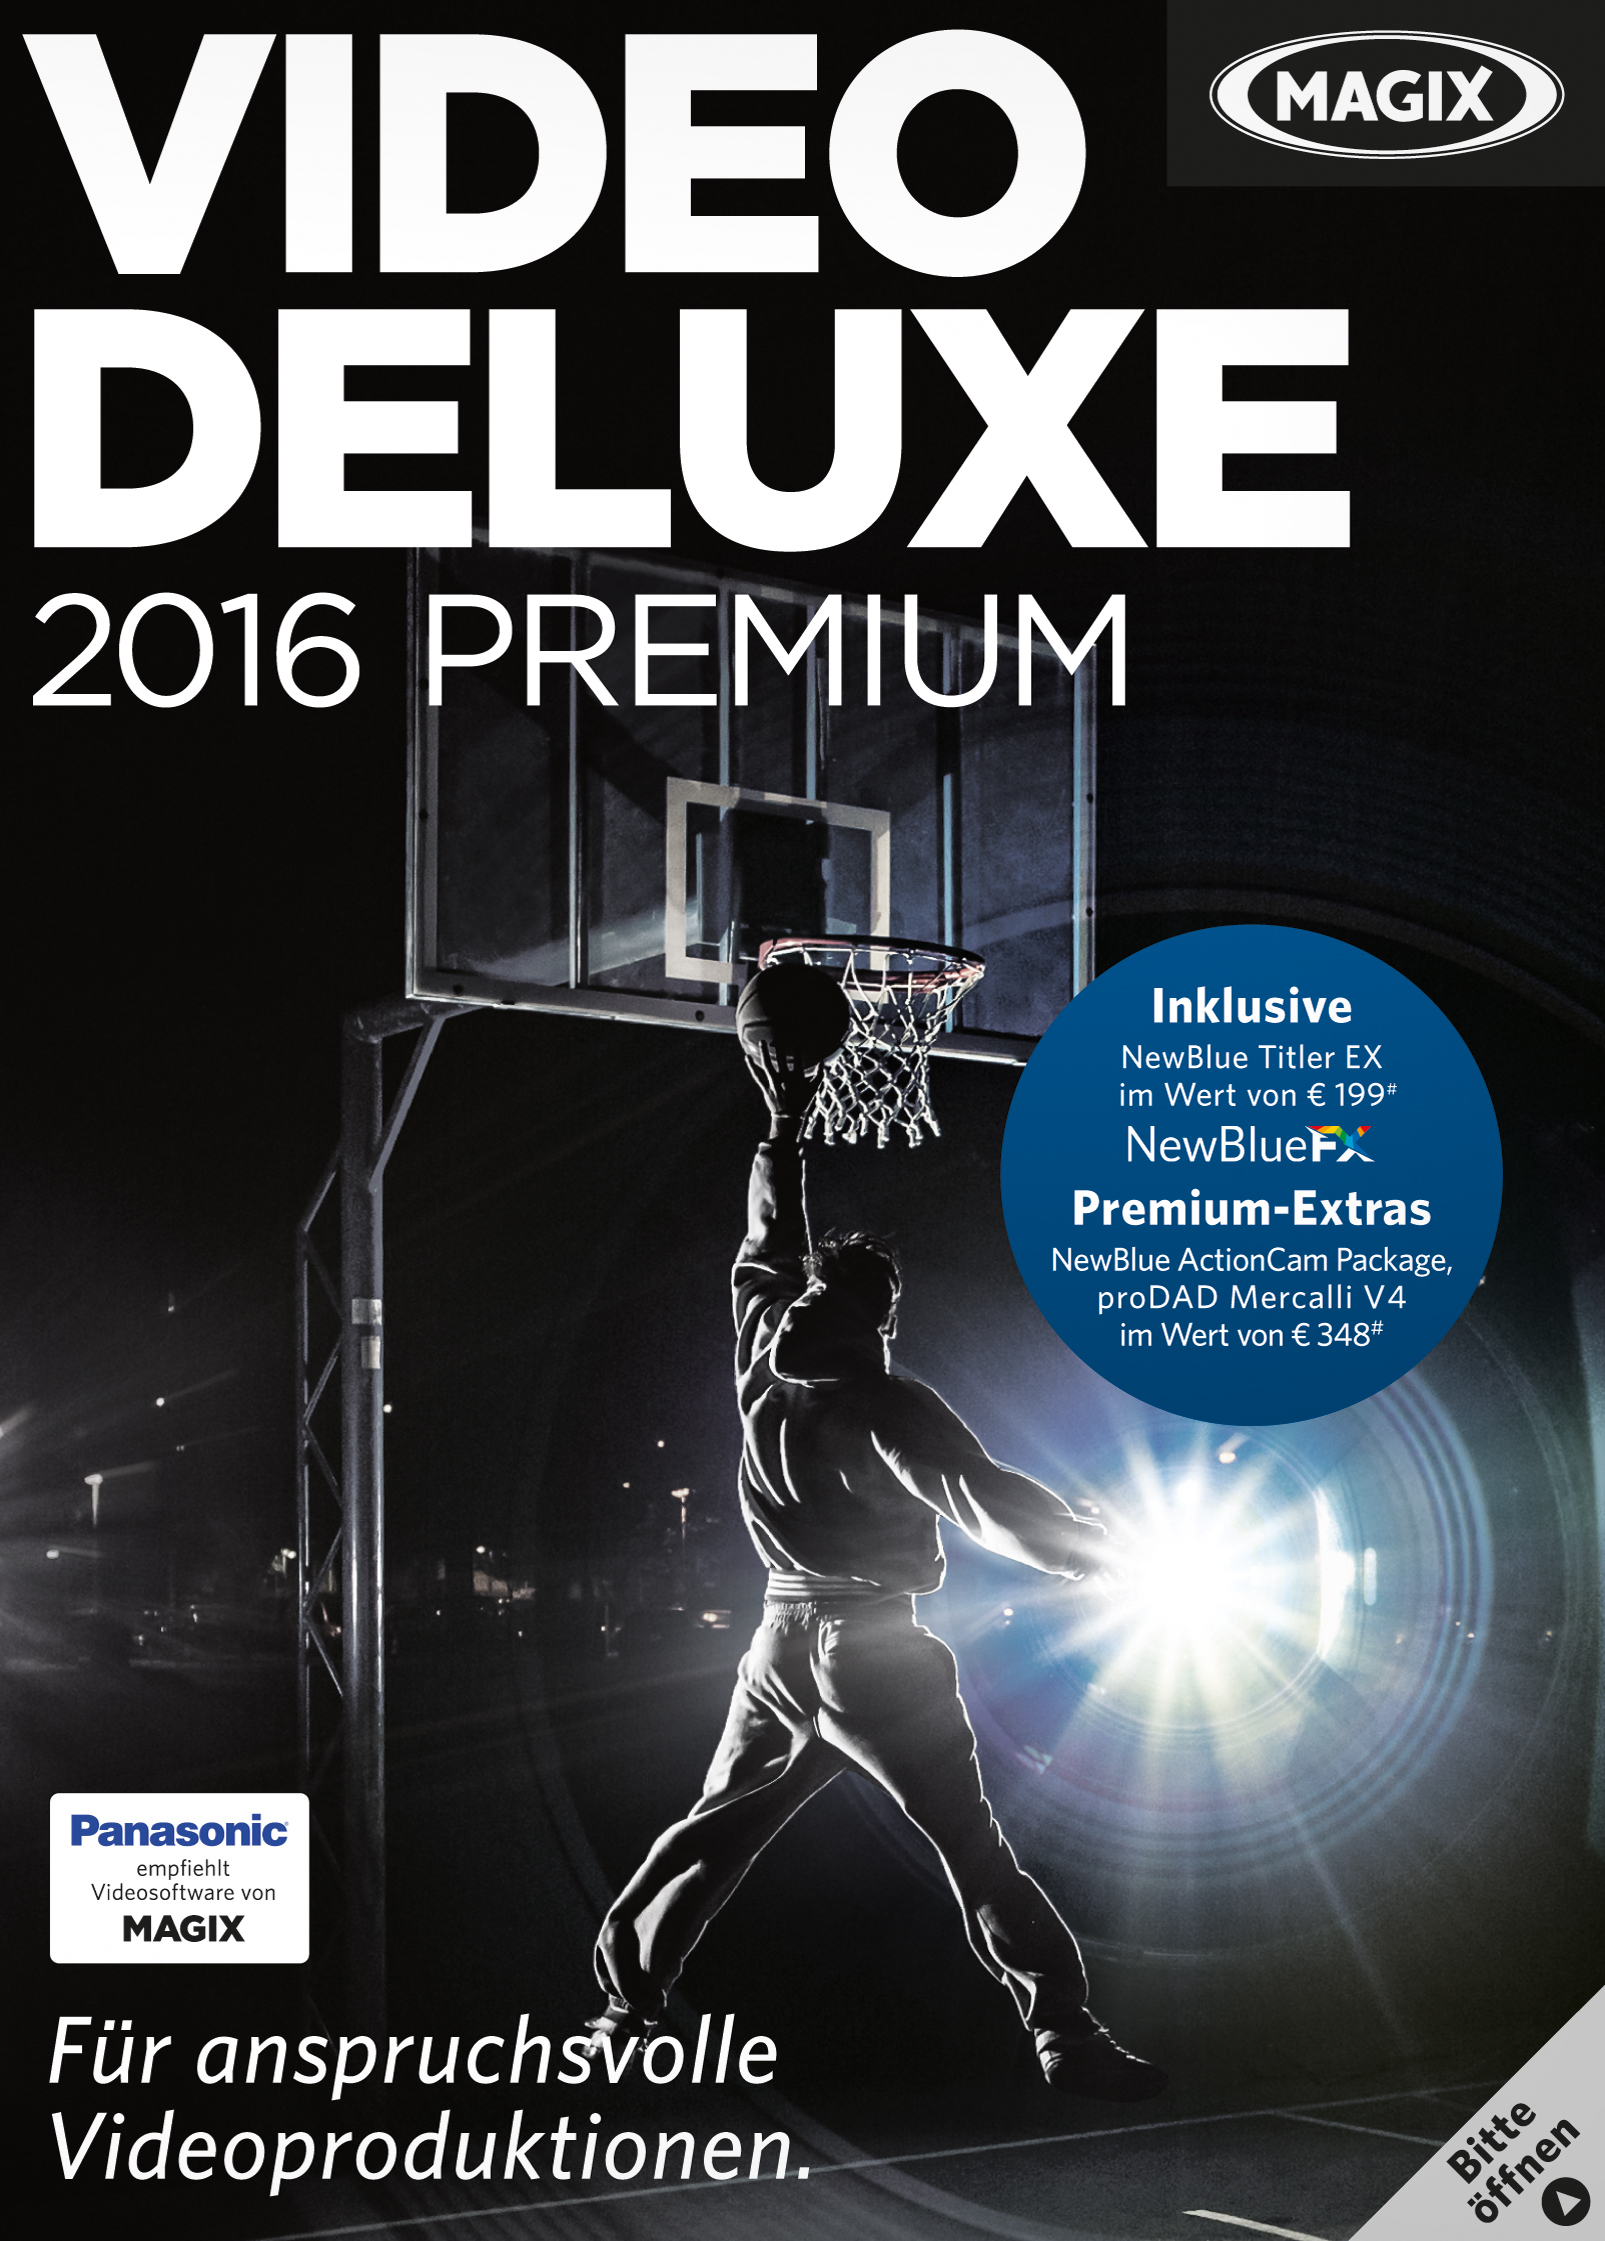 MAGIX Video deluxe 2016 Premium [Download] (Microsoft Video-editing)